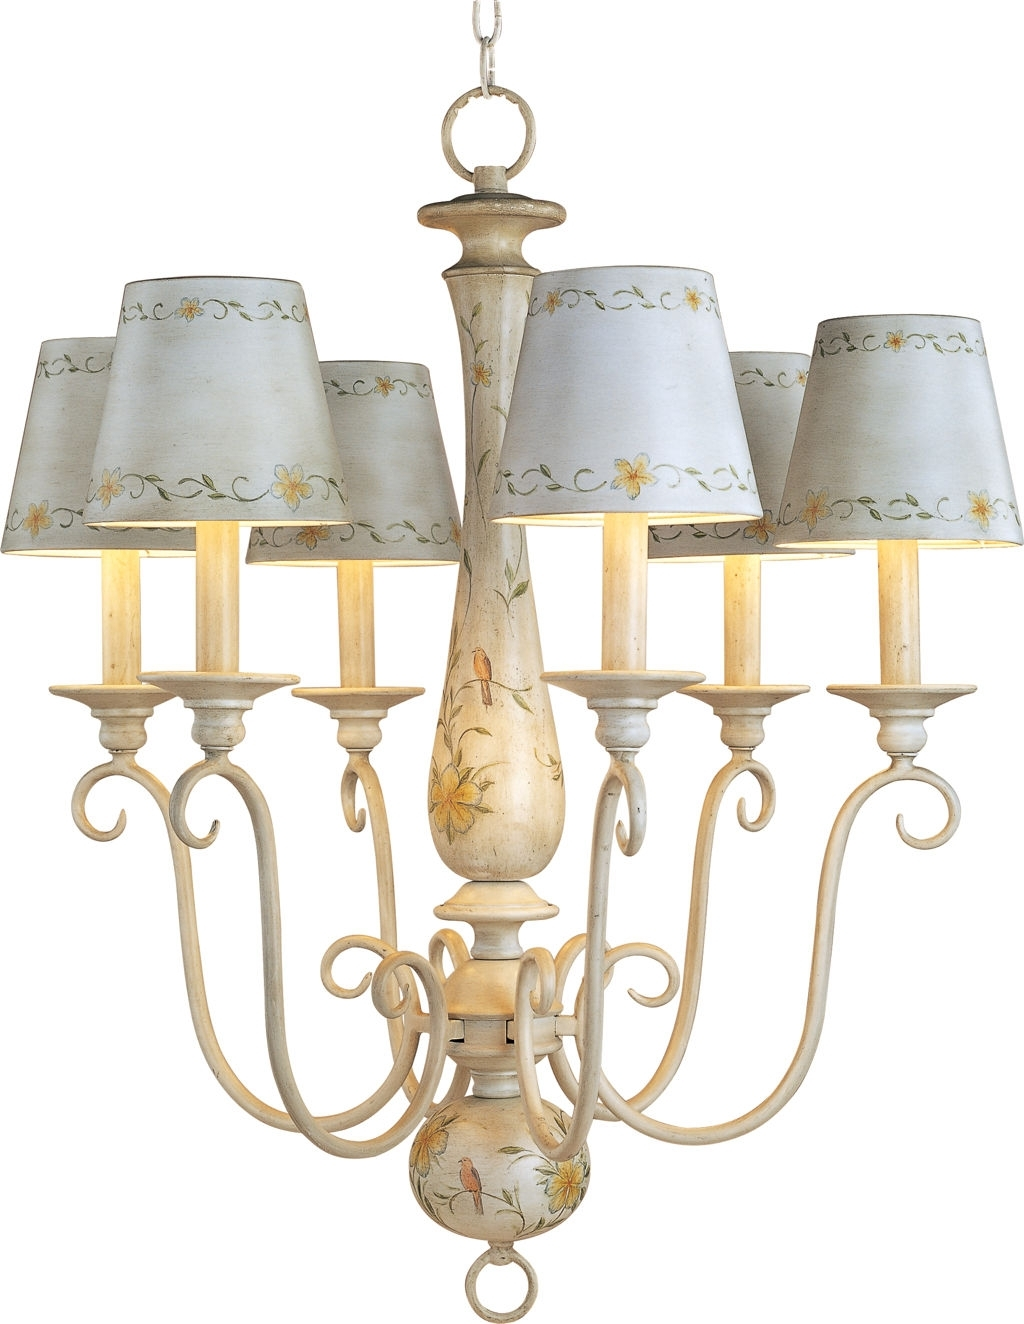 Popular Chandeliers With Lamp Shades Regarding Antique French Country Mini Chandelier With Ceramic Lamp Shades And (View 8 of 15)